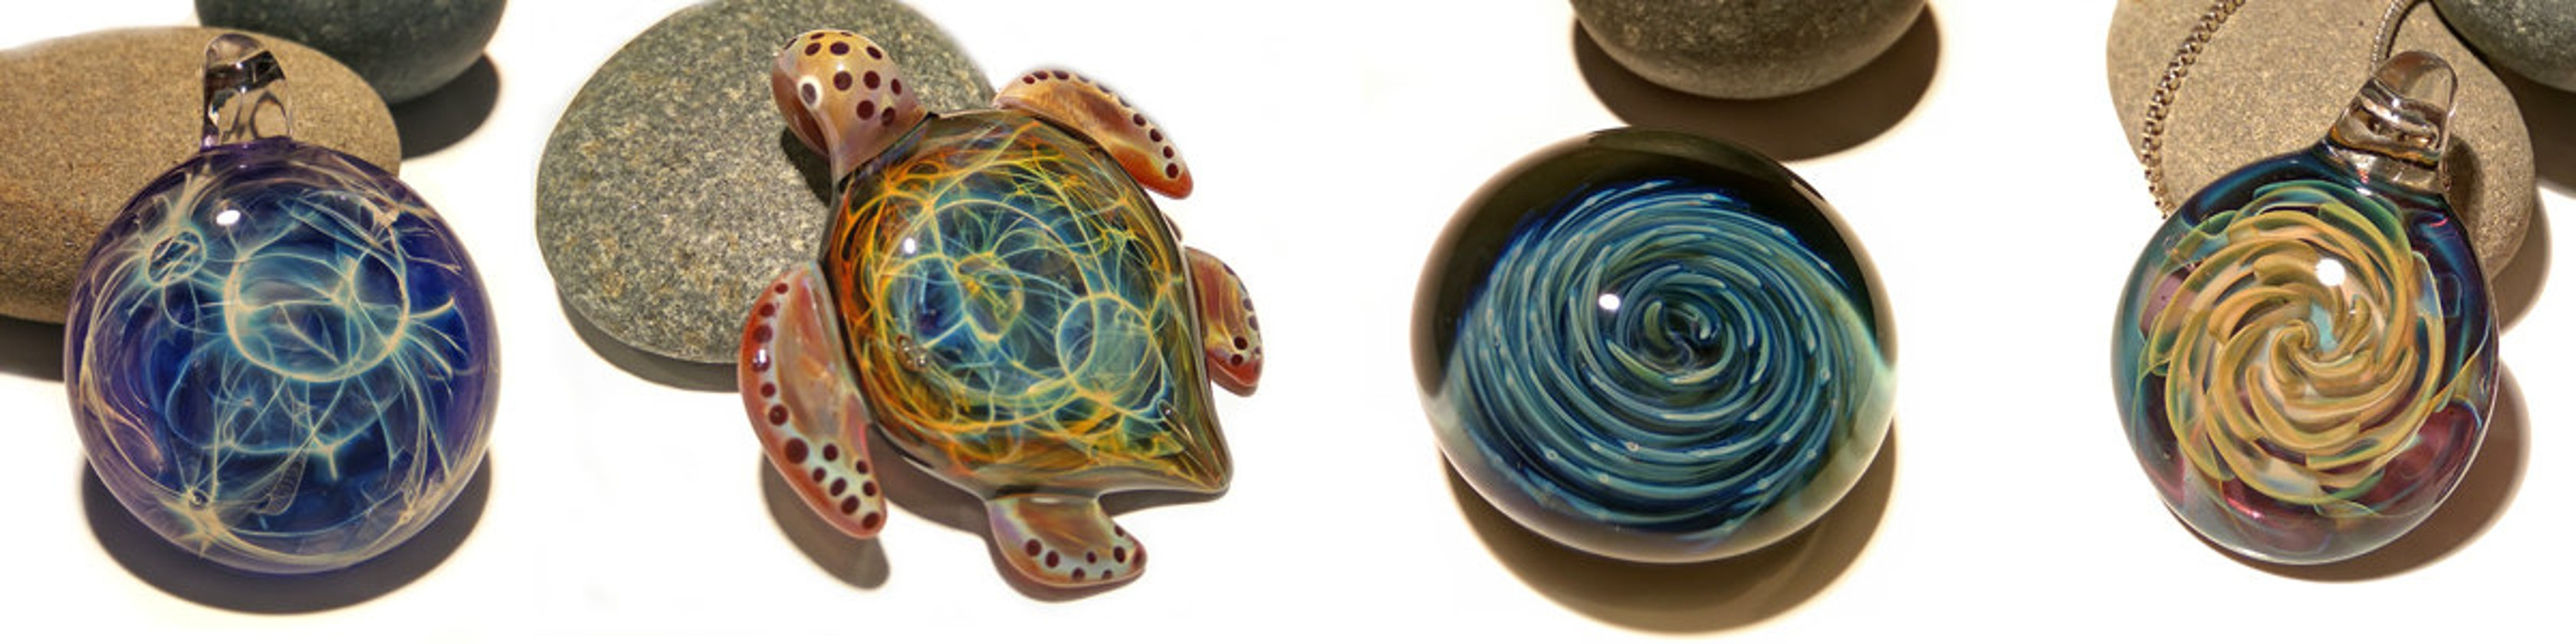 night sky turtle glass pendant glass jewelry glass art